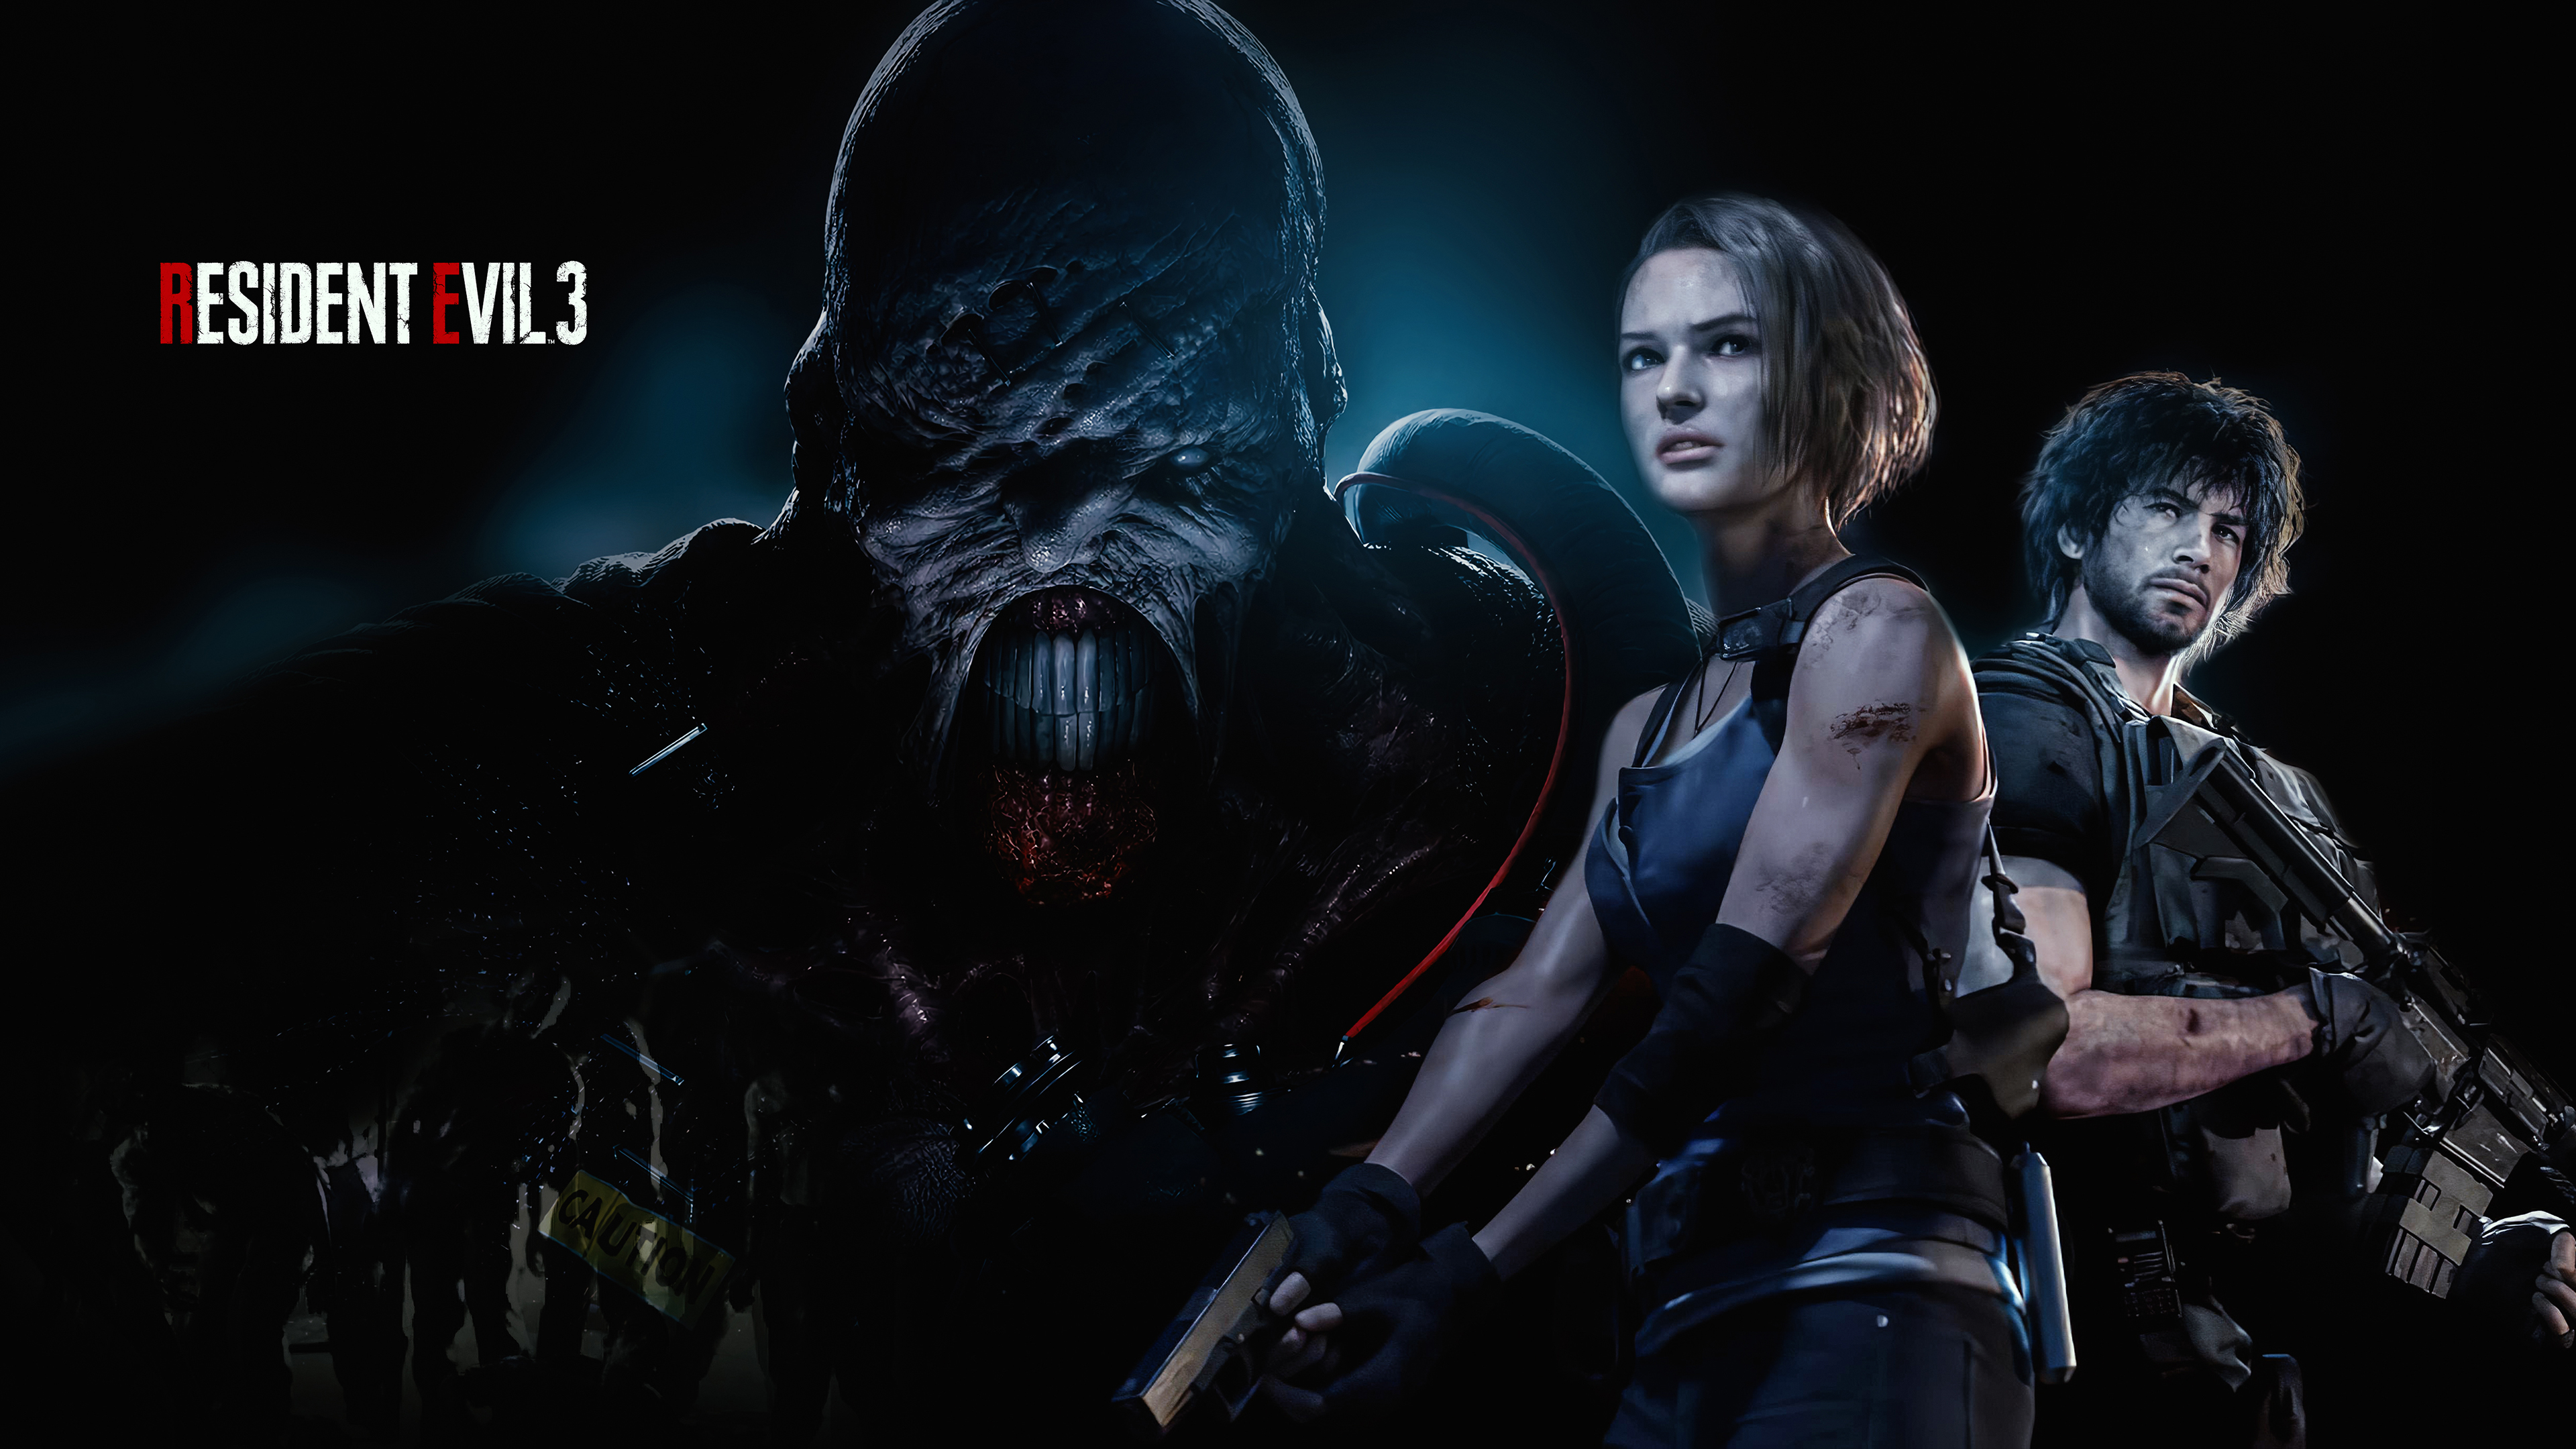 New Resident Evil 3 2020 4k Wallpaper Hd Games 4k Wallpapers